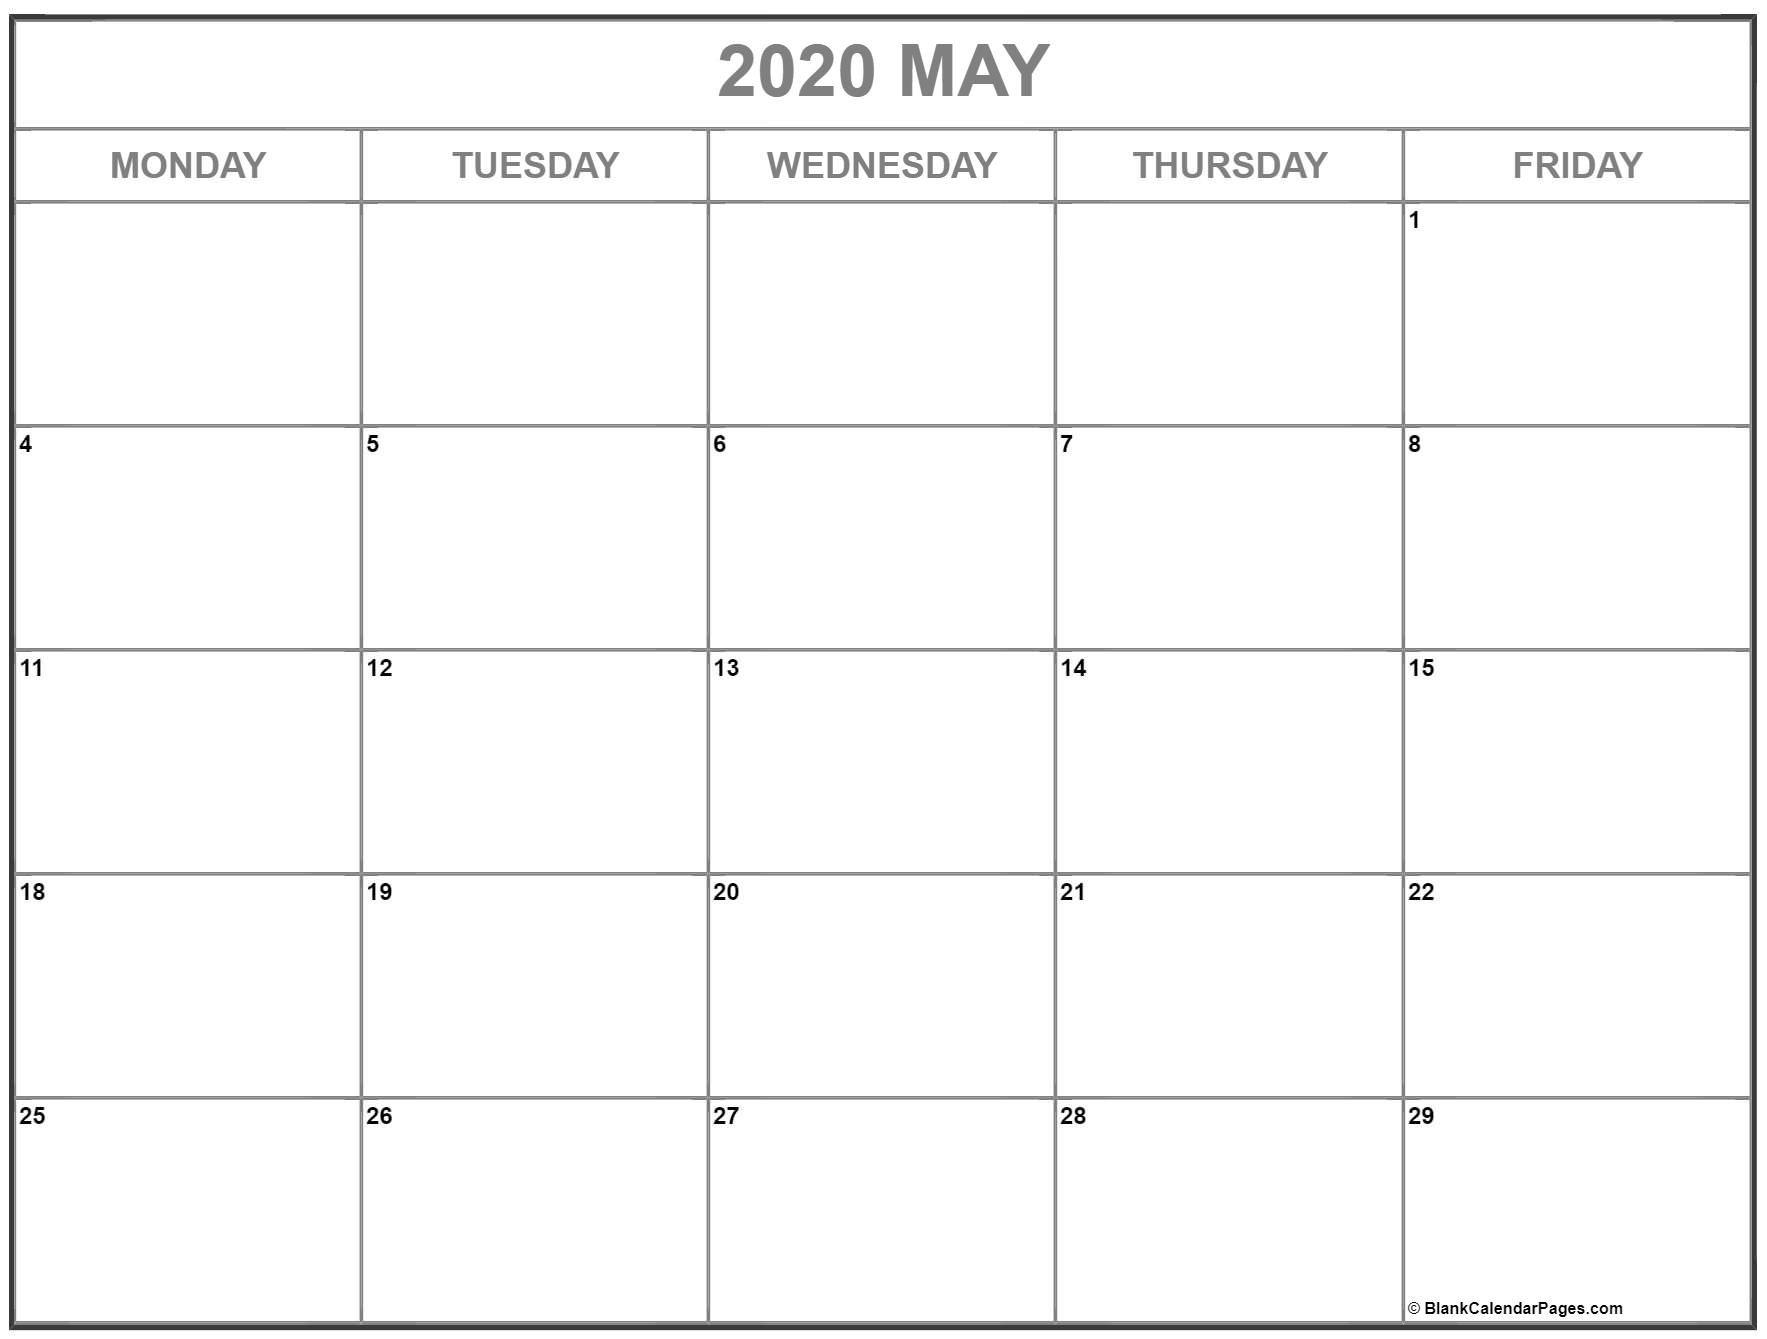 May 2020 Monday Calendar | Monday To Sunday with Printable Monday To Sunday 2020 Calendar